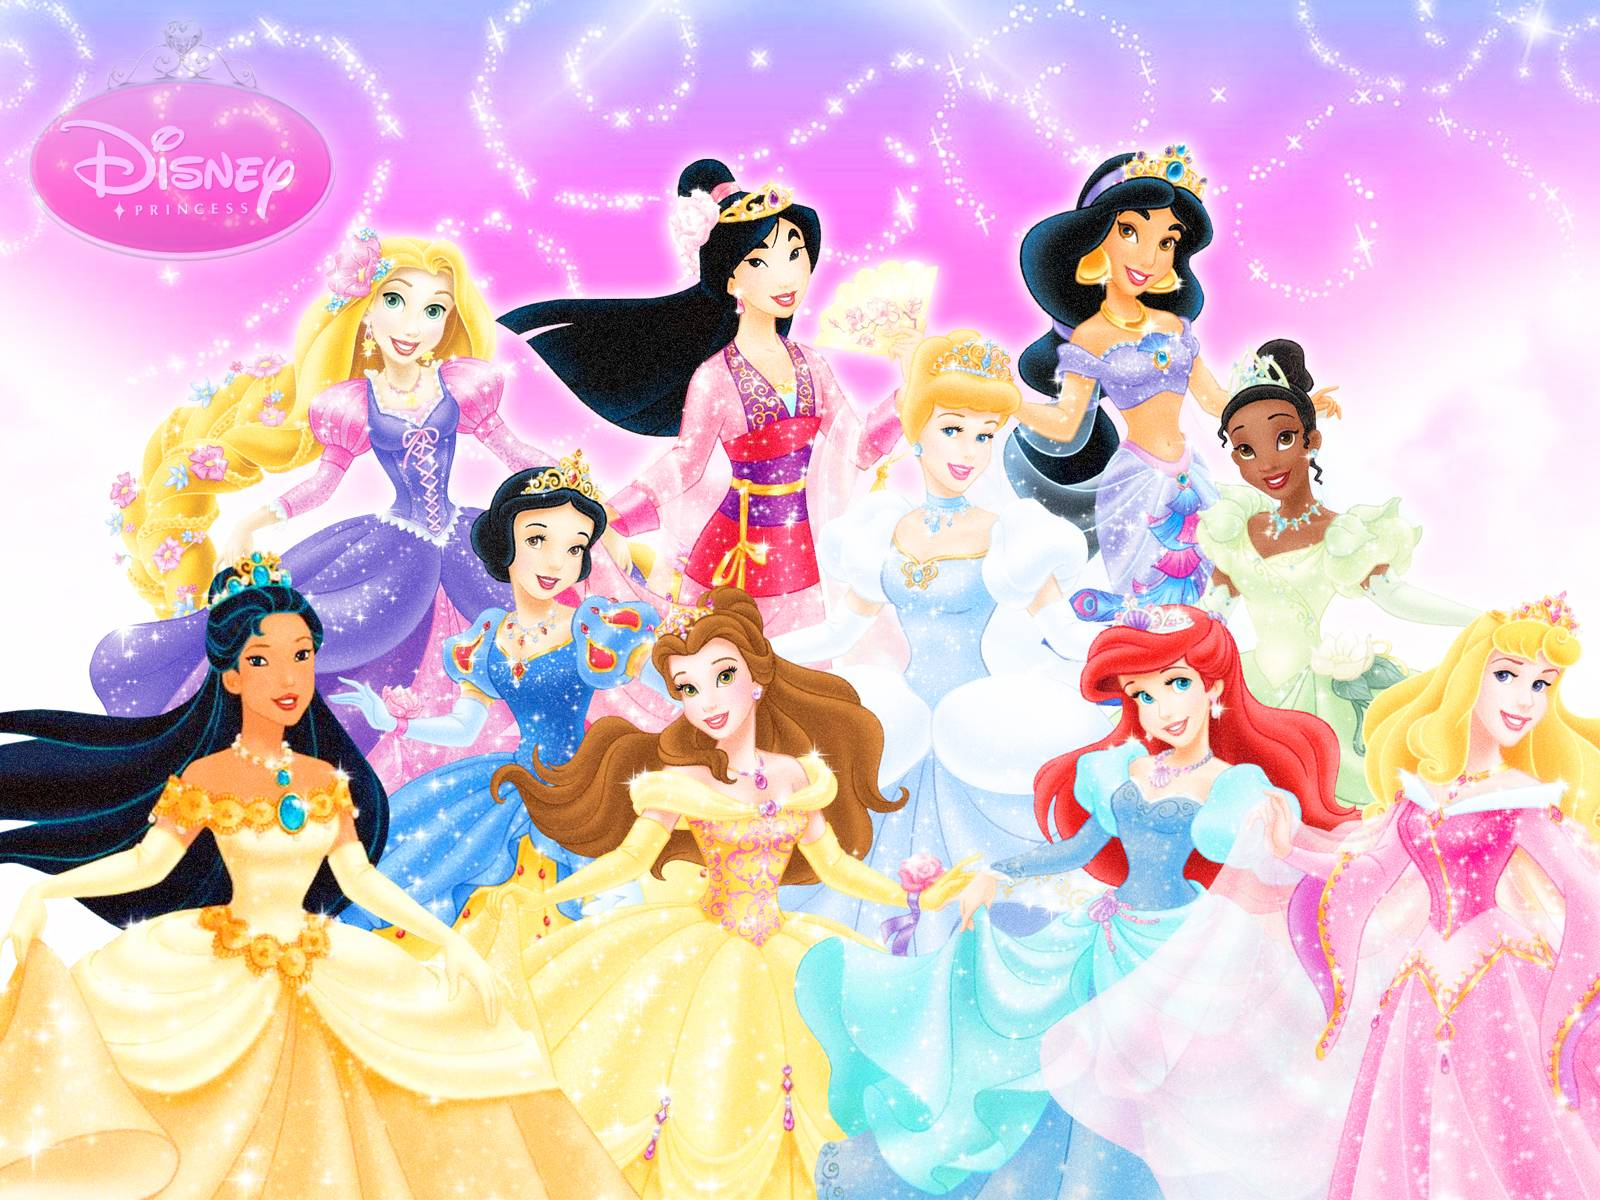 Disney Princess Wallpapers  Best Wallpapers 1600x1200